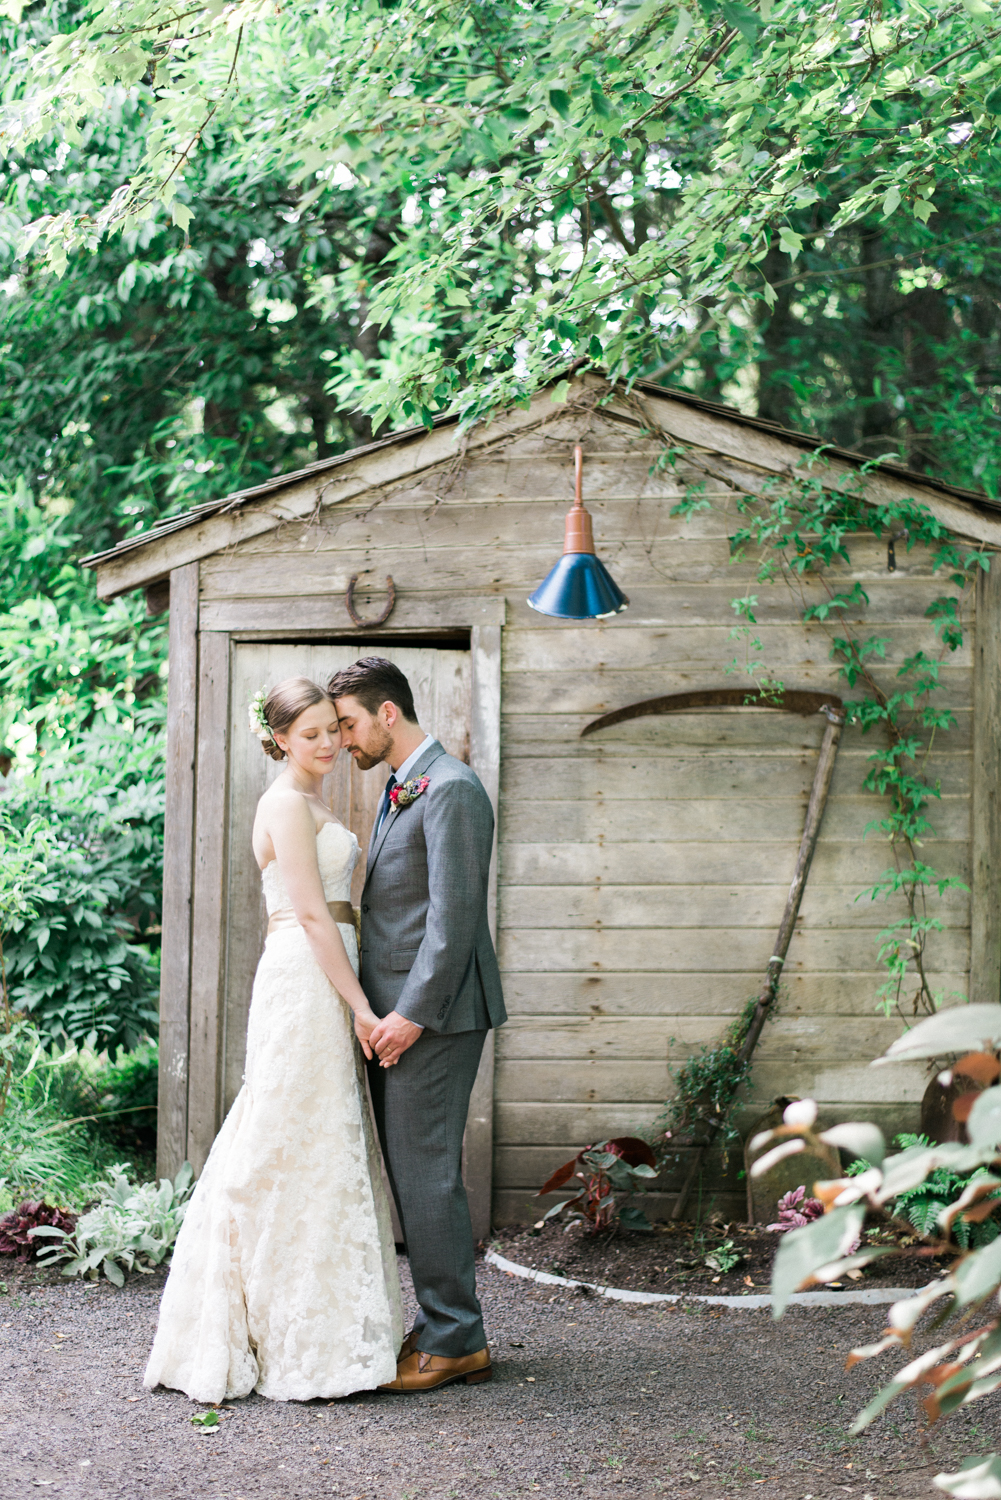 Mcmenamins-Cornelius-Pass-Roadhouse-rustic-natural-diy-outdoor-barn-wedding-Dane-Kirsten-Shelley-Marie-Photo-2